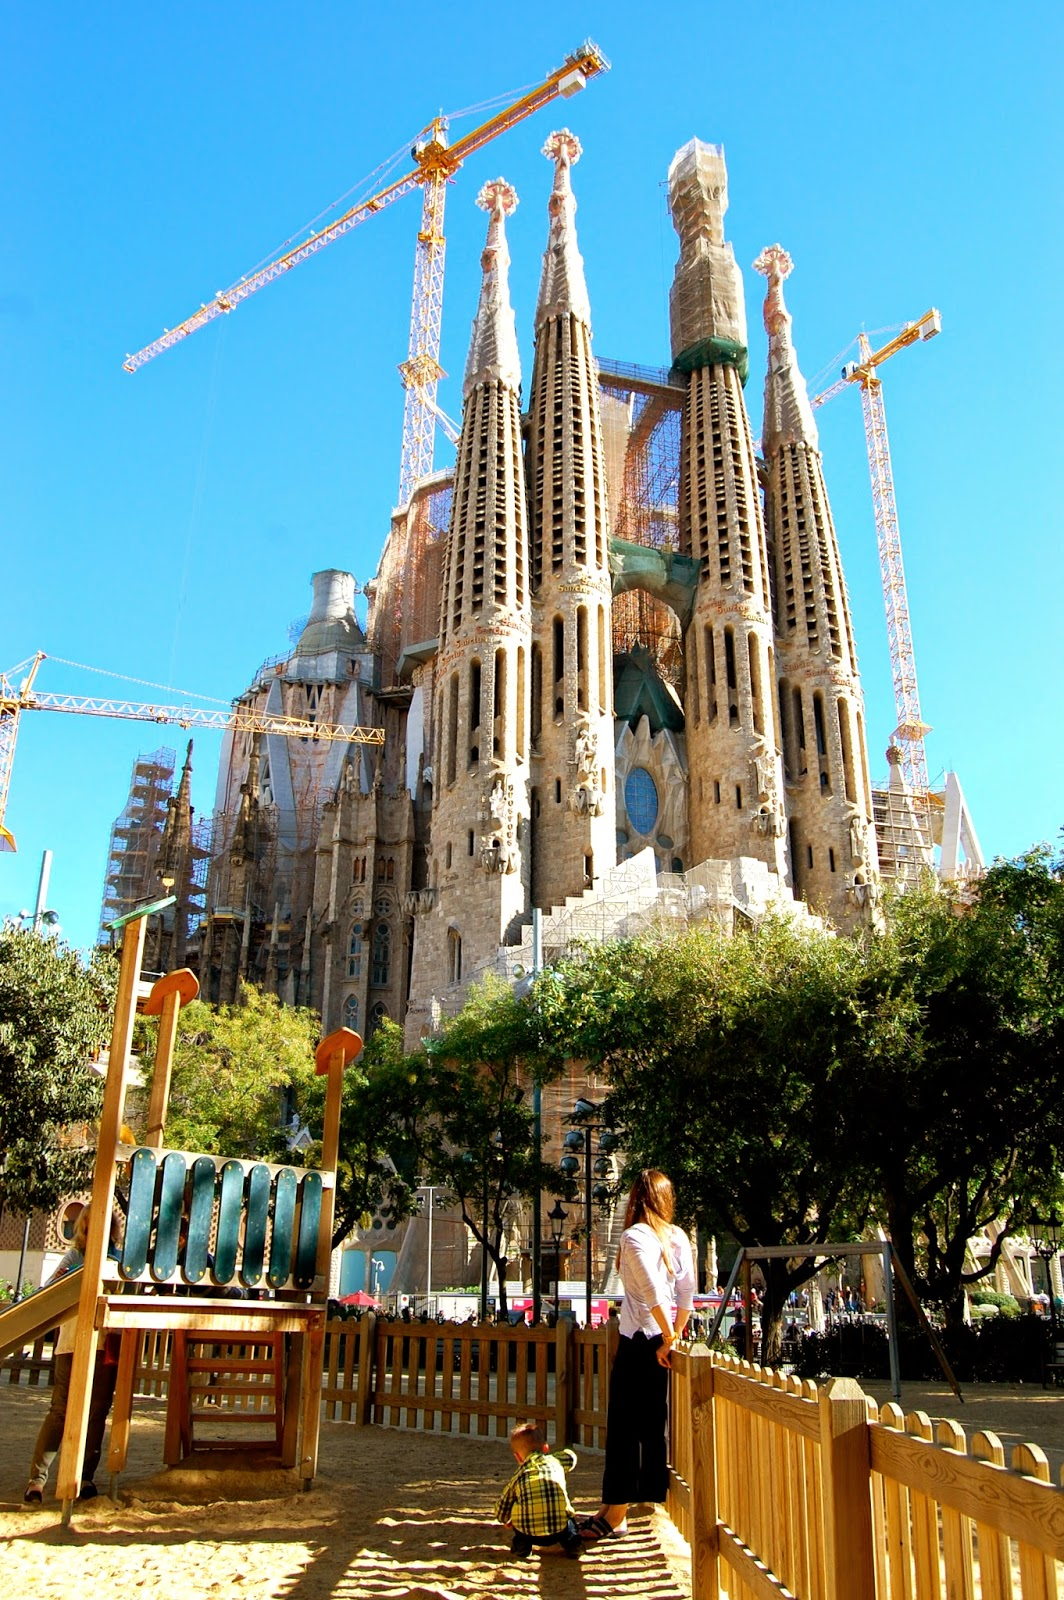 View of the Passion Facade of the Sagrada Familia from the playground